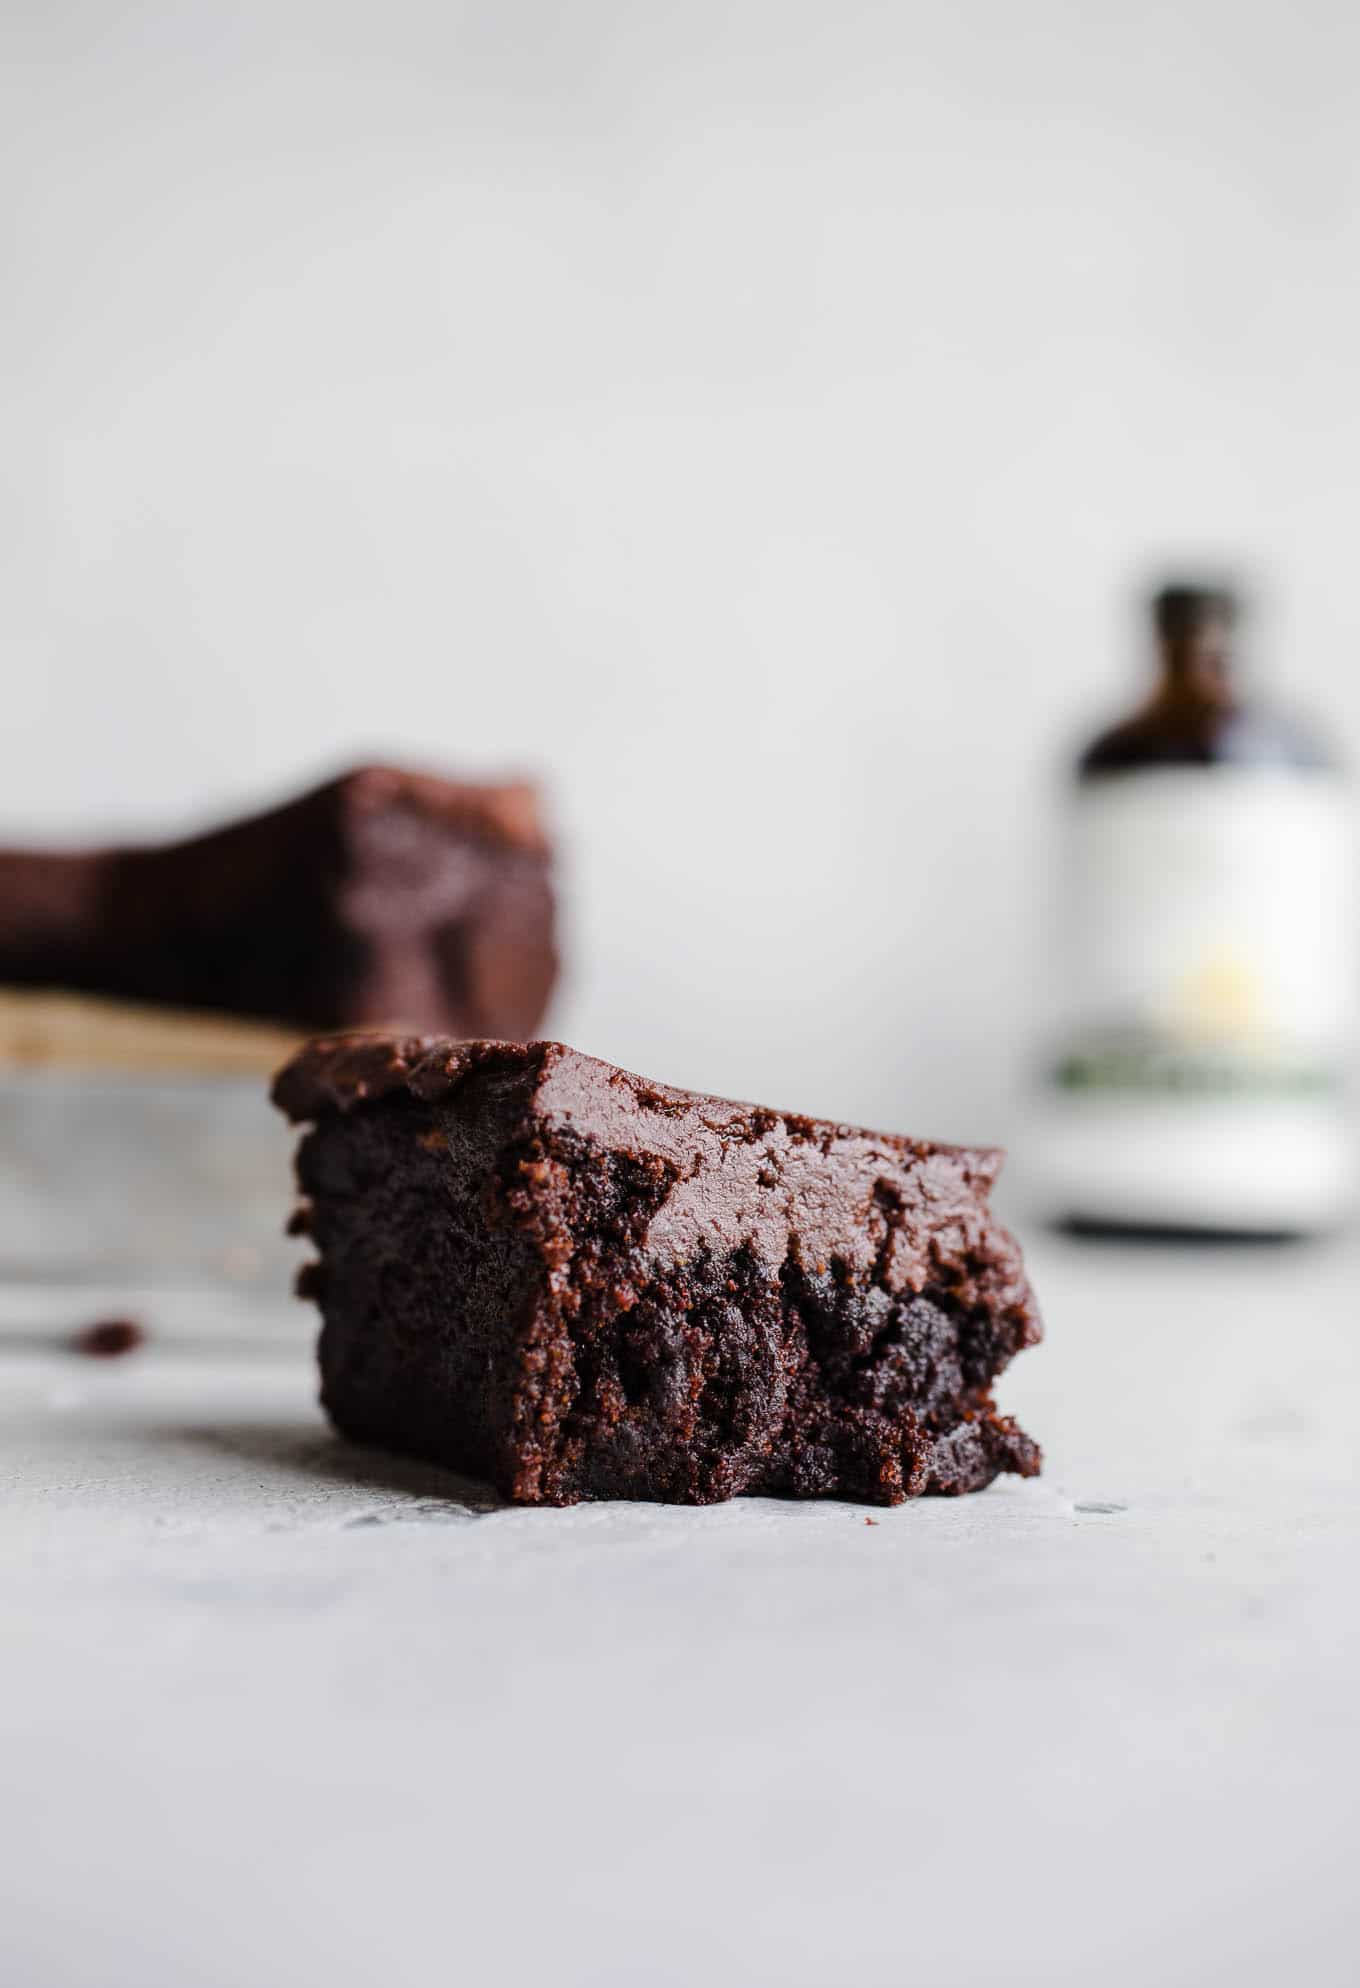 Easy Sweet Potato Brownies made with 5 ingredients for a decadent, healthier brownie. Gluten-free, vegan, refined sugar-free.